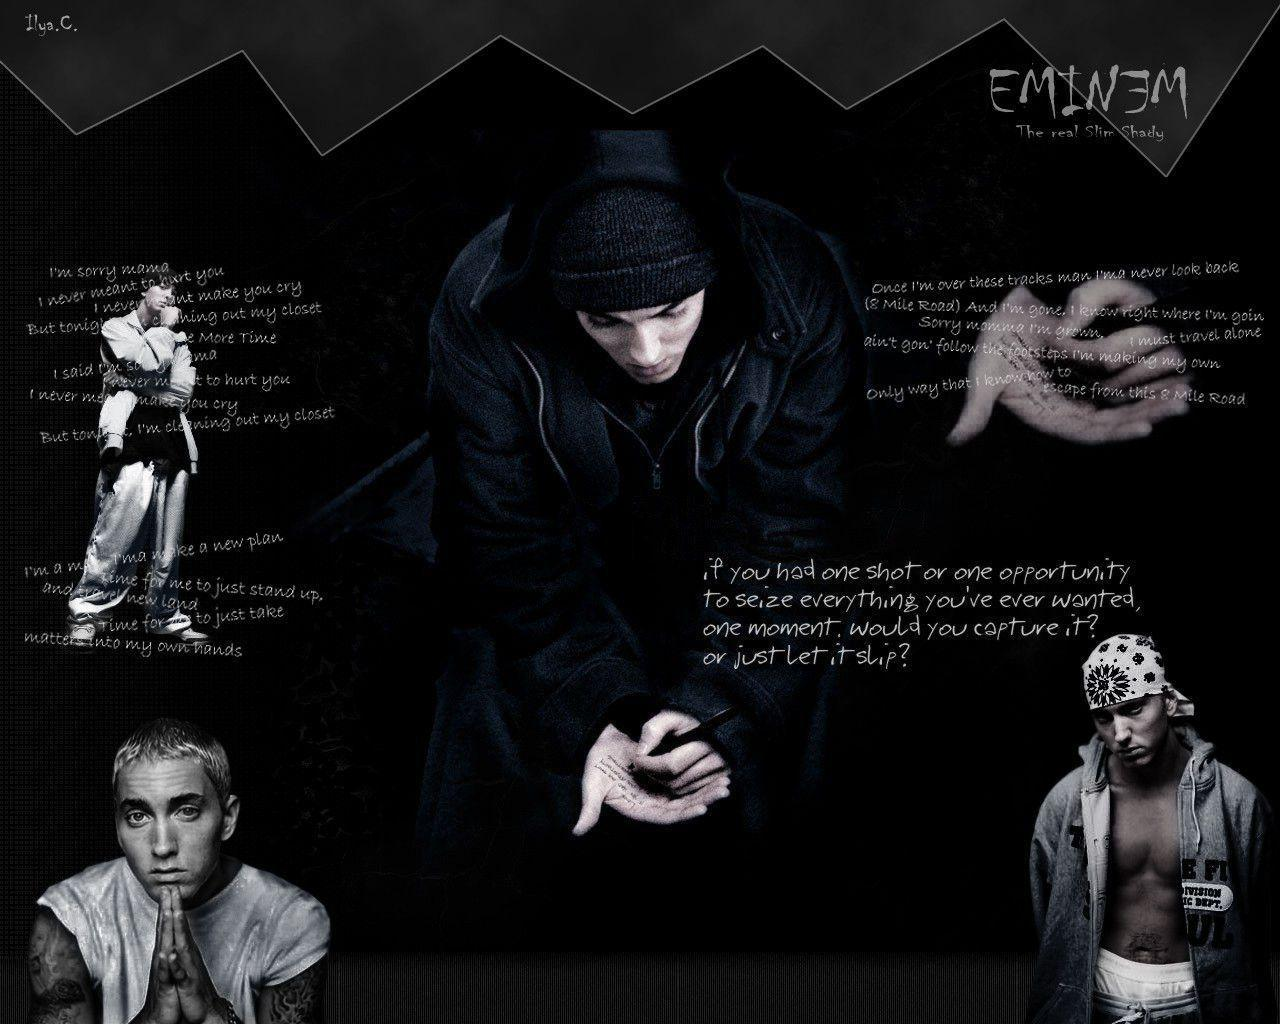 Eminem - EMINEM Wallpaper (9776513) - Fanpop